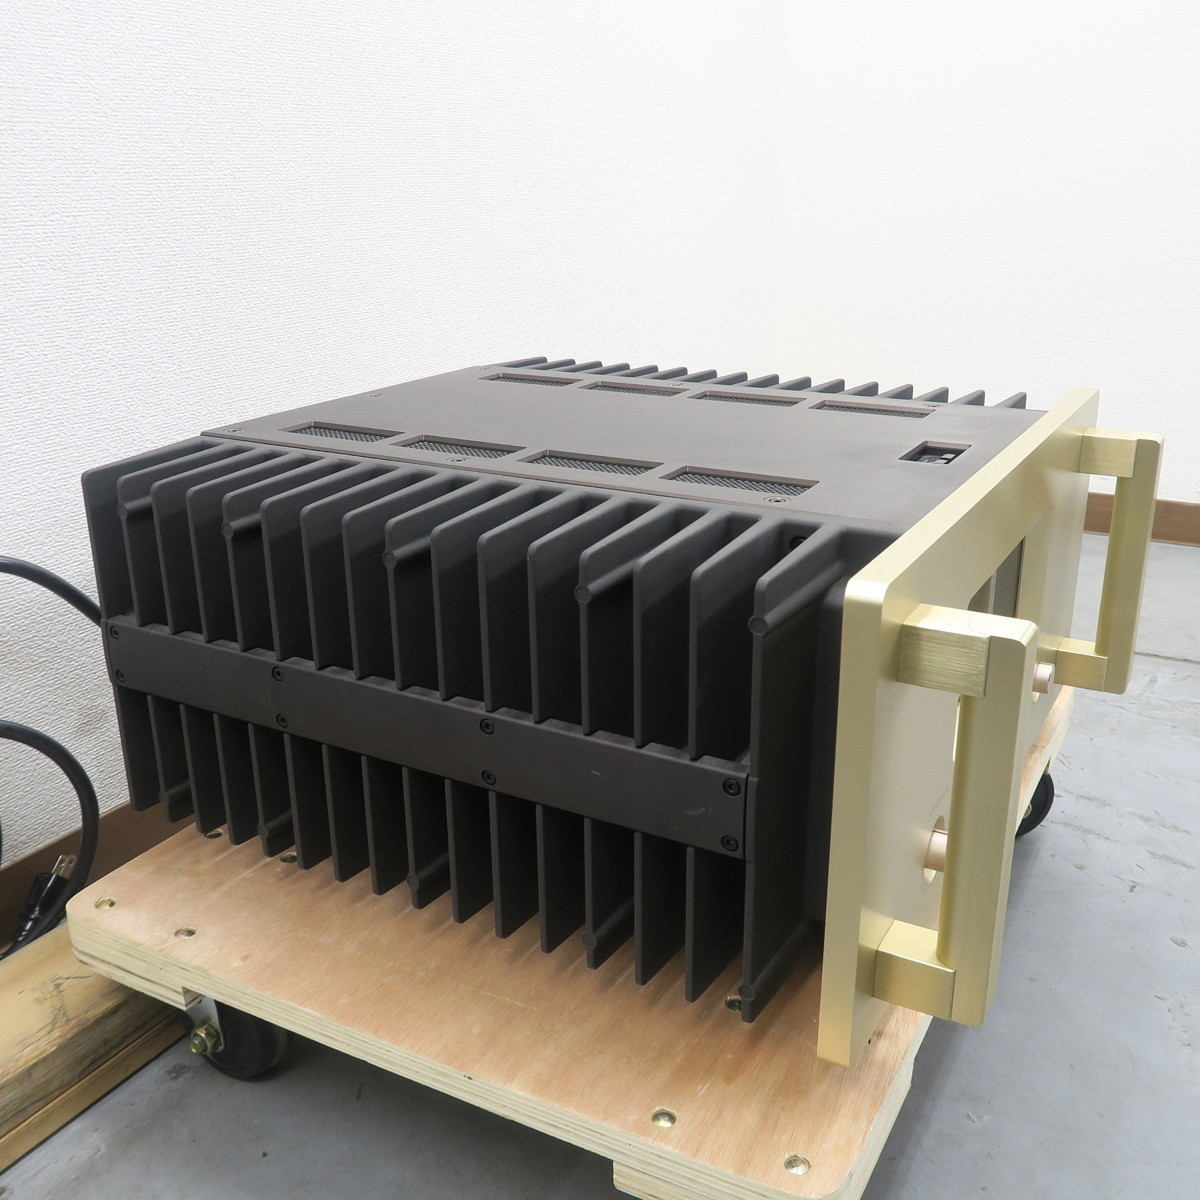 【Bランク】アキュフェーズ Accuphase A-50 パワーアンプ @49991_画像2